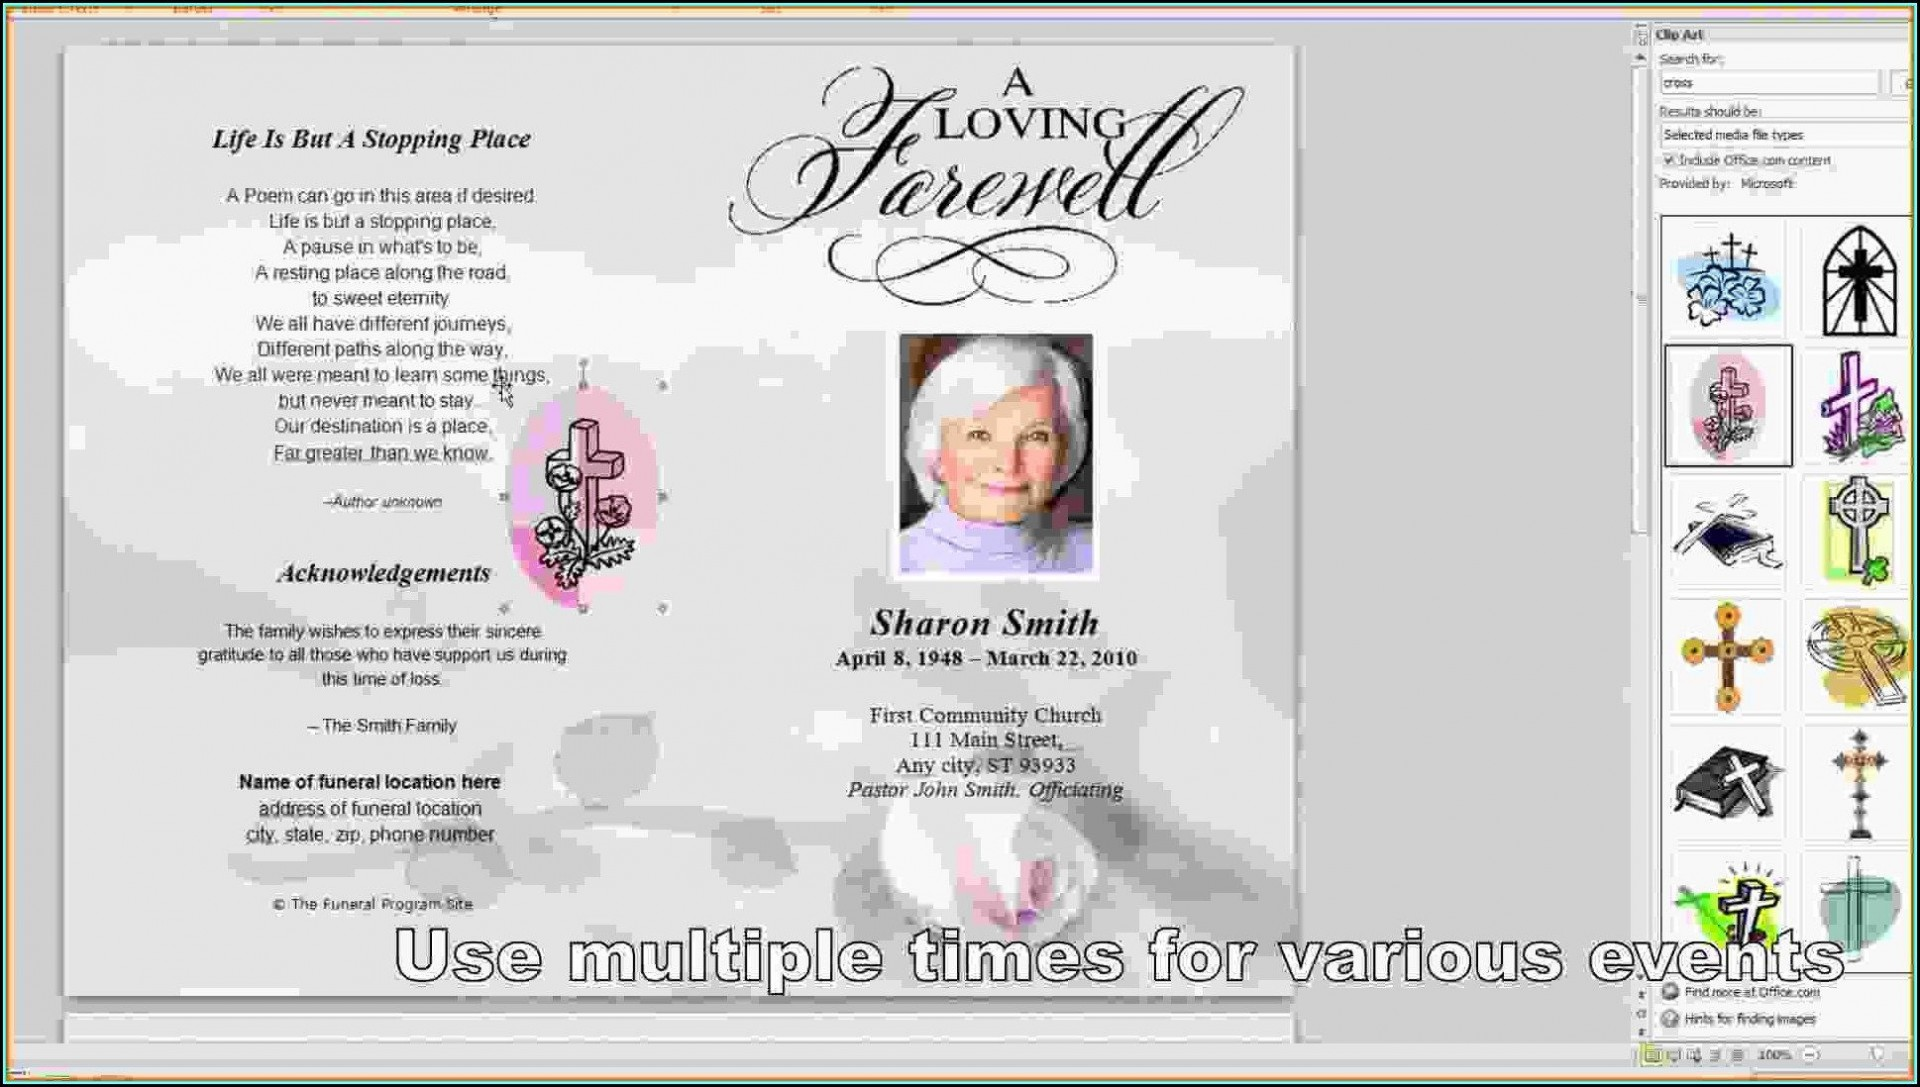 008 Awesome Free Funeral Pamphlet Template High Definition  Word Simple Program Download Psd1920